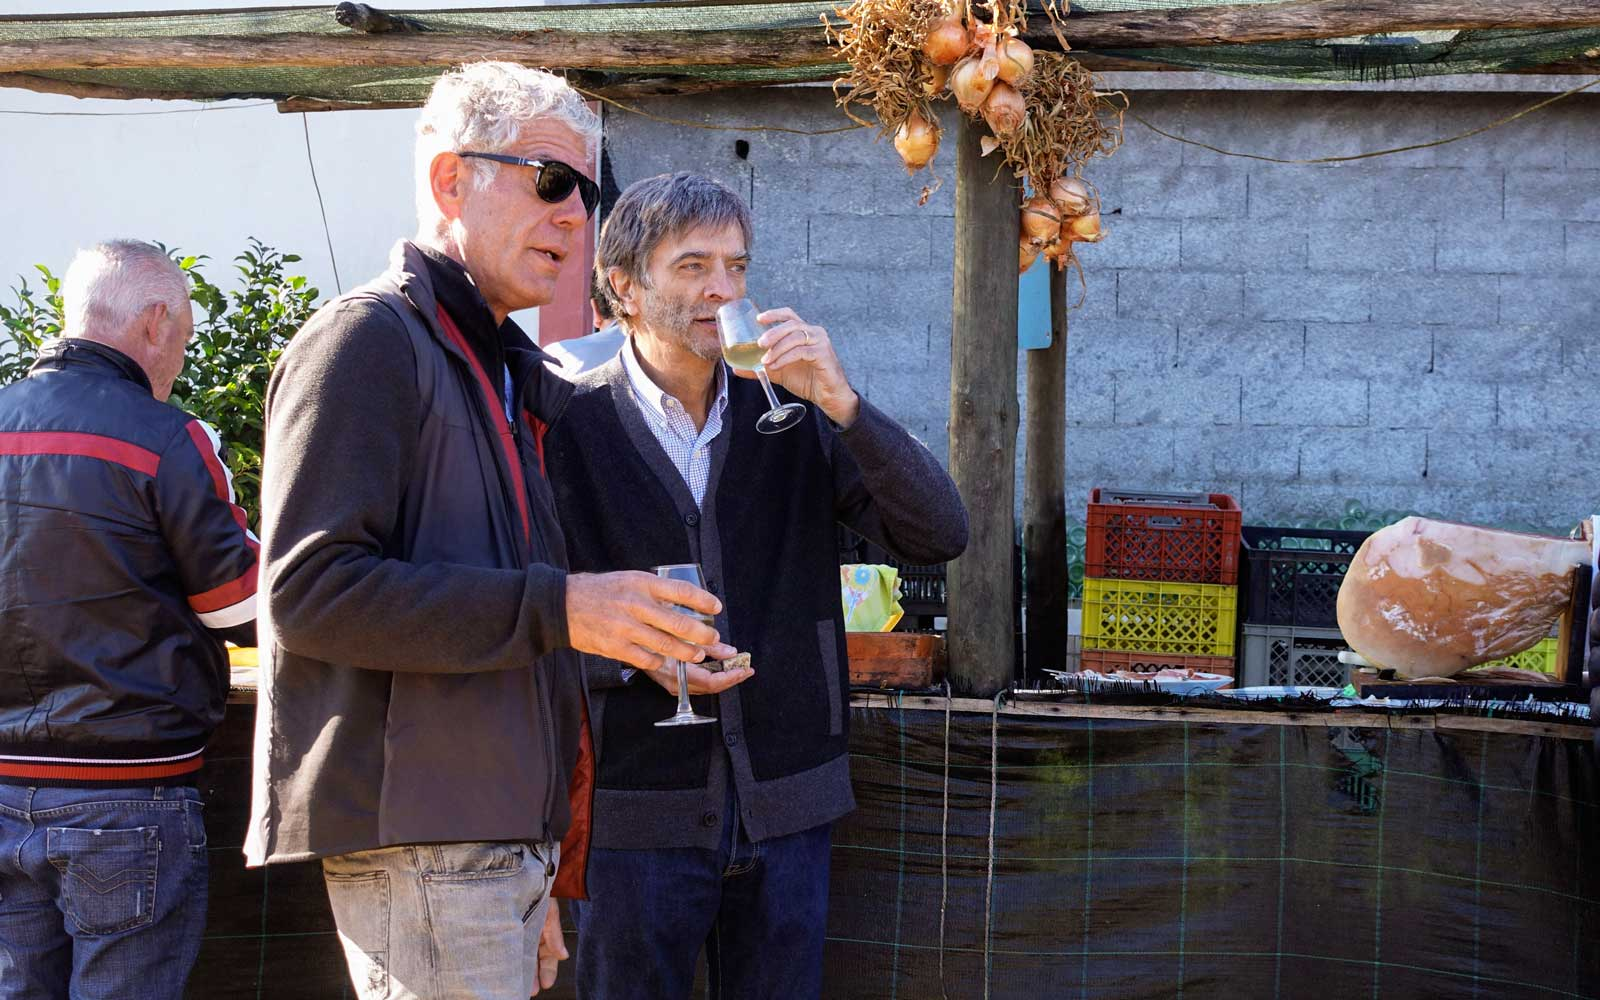 Anthony Bourdain Parts Unknown Ep 508 - Porto